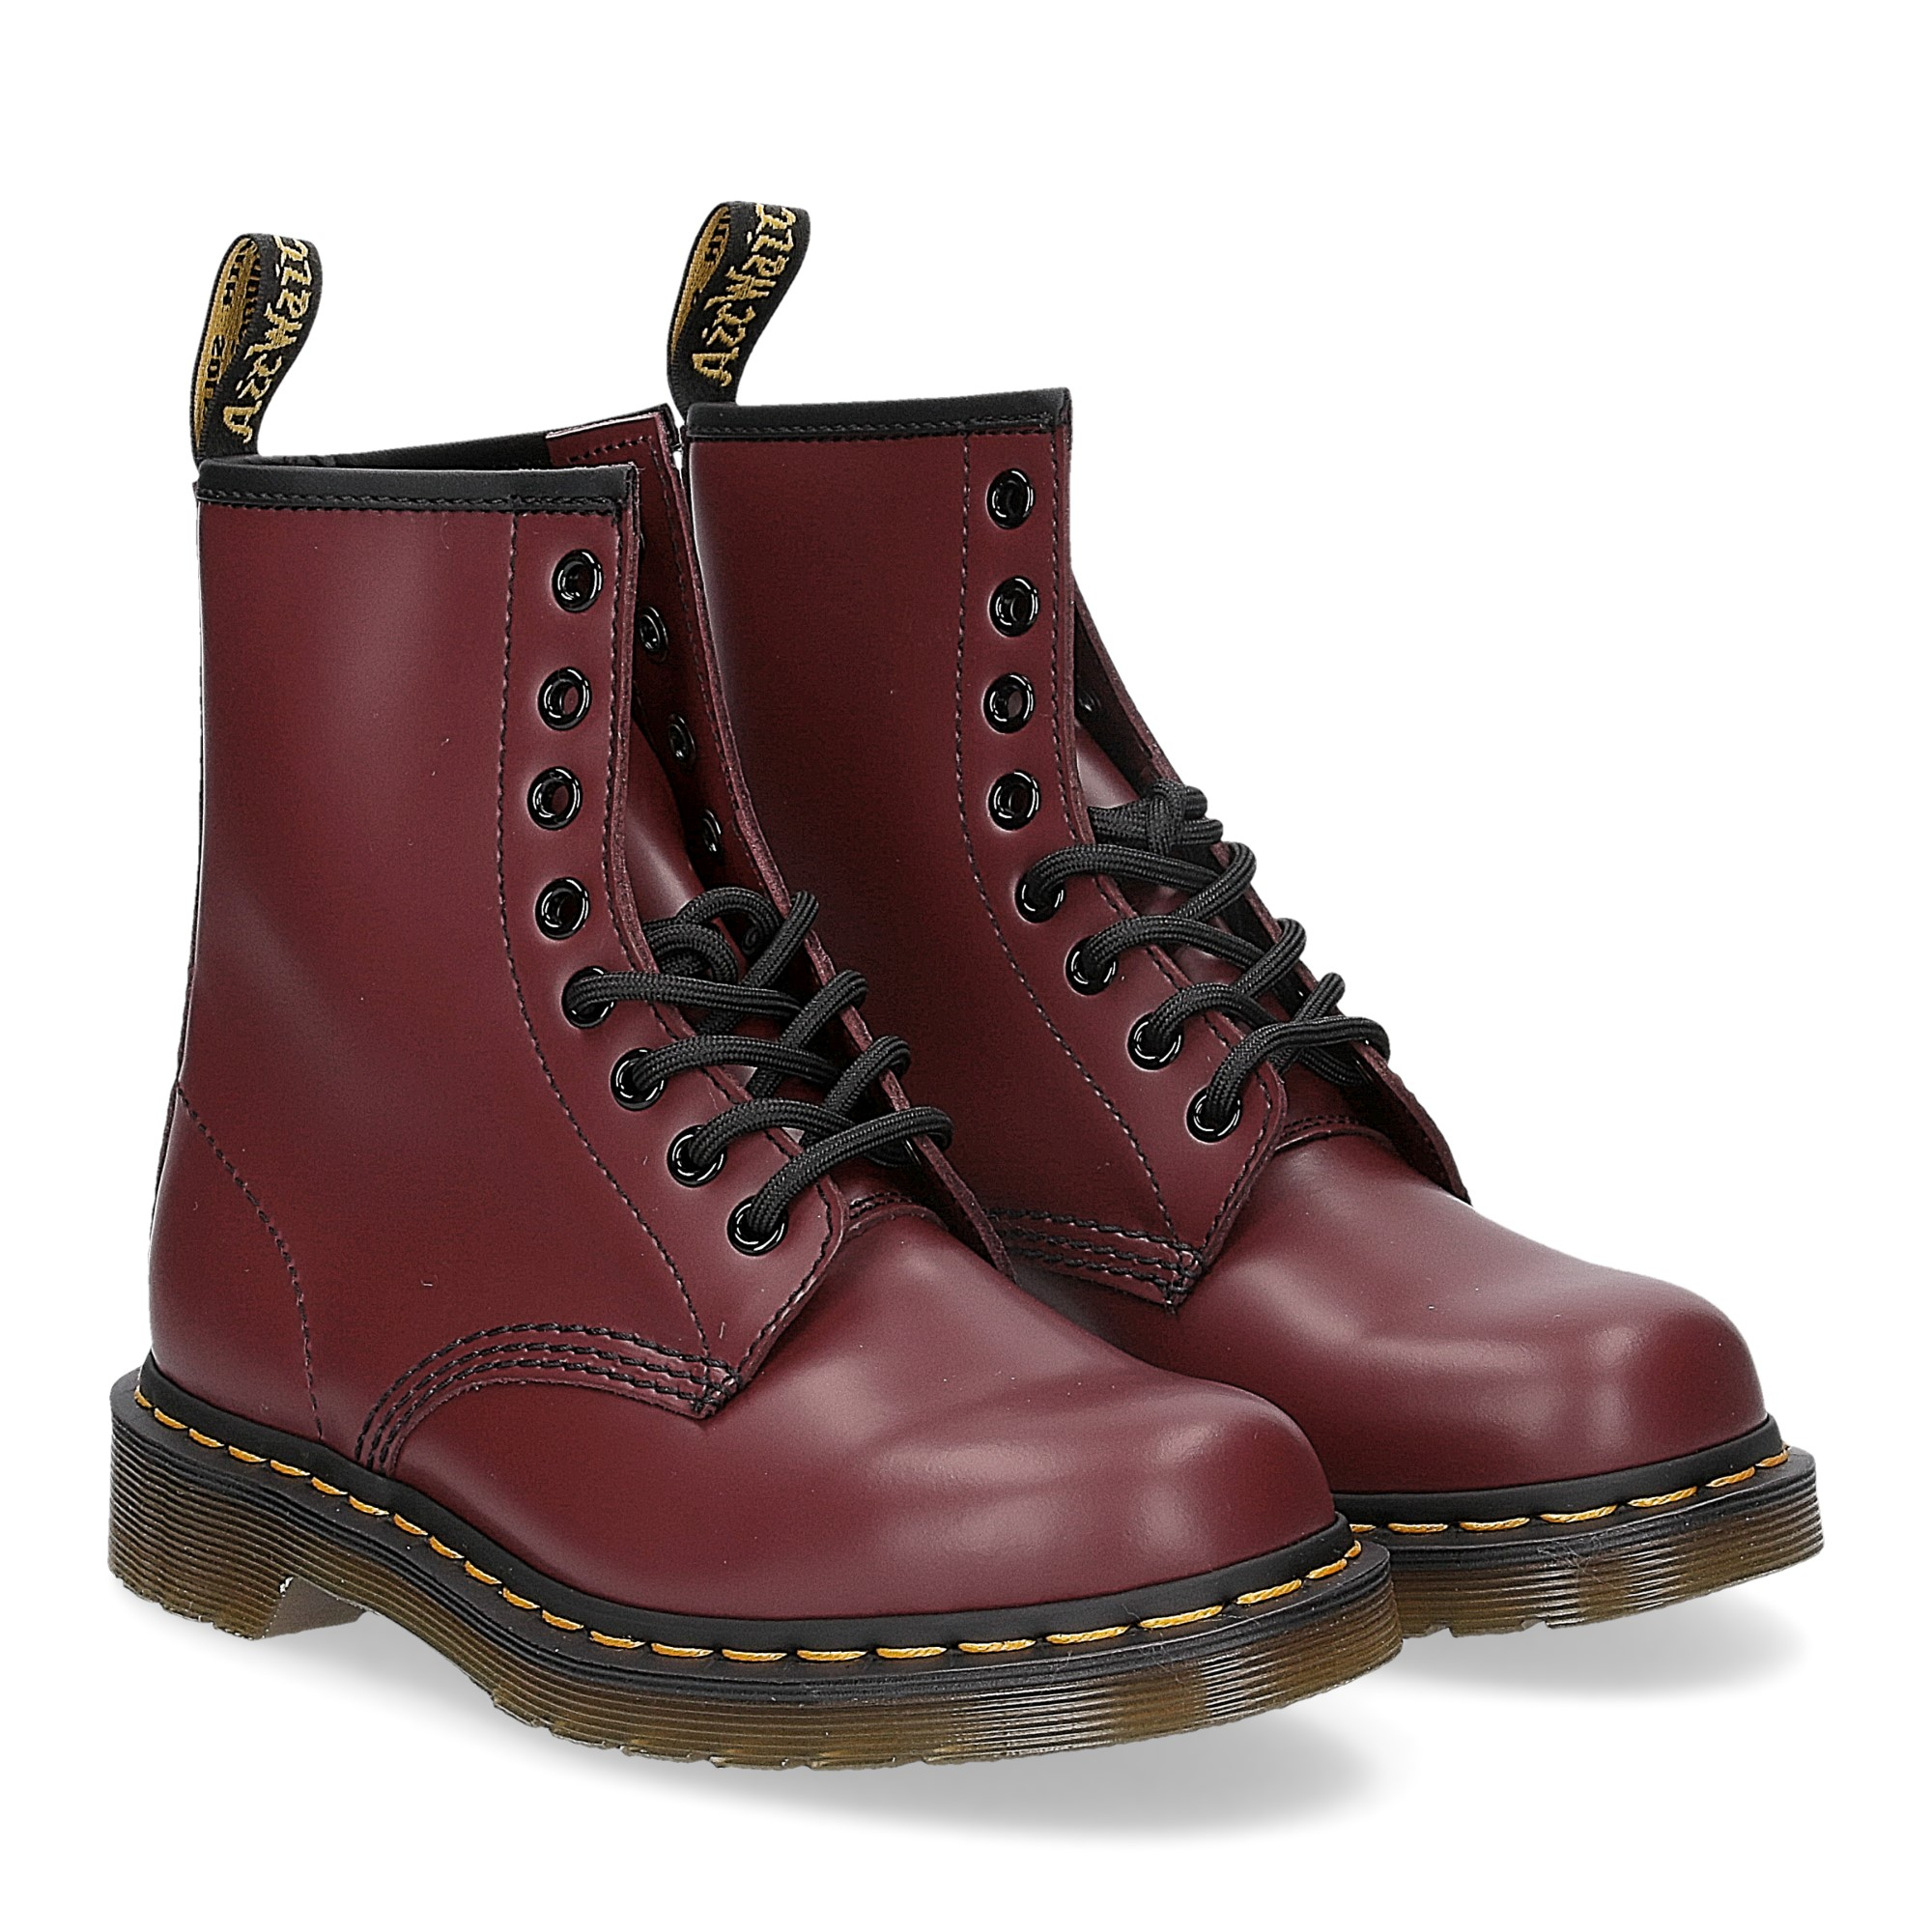 Dr. Martens Anfibio Donna 1460 cherry red smooth